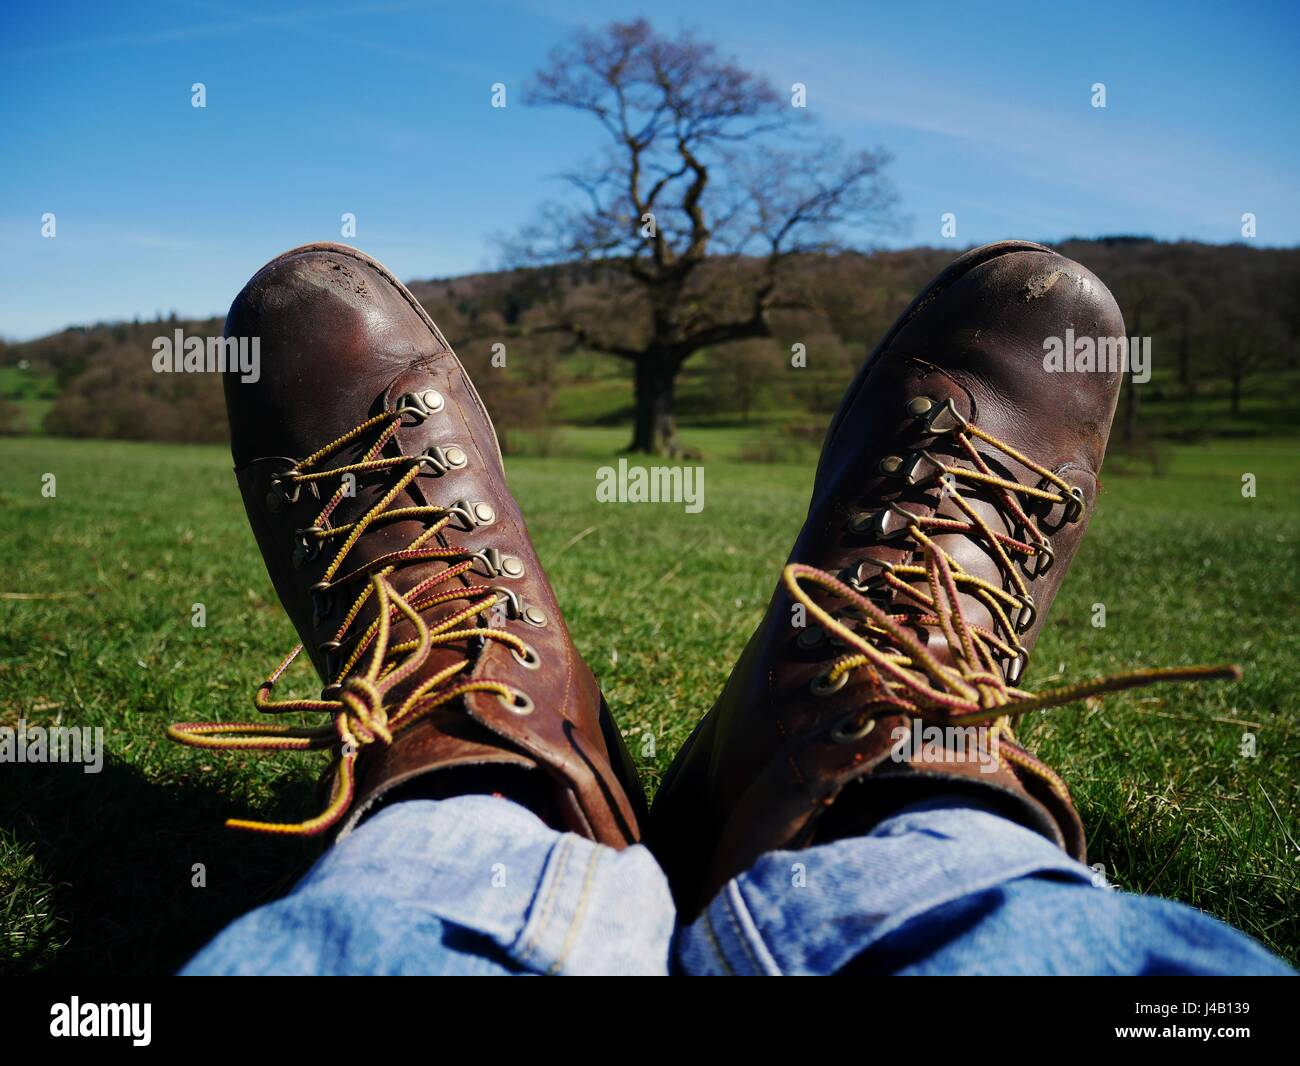 Hiker taking a rest on grass with scuffed brown leather hiking boots, Derbyshire, UK - Stock Image